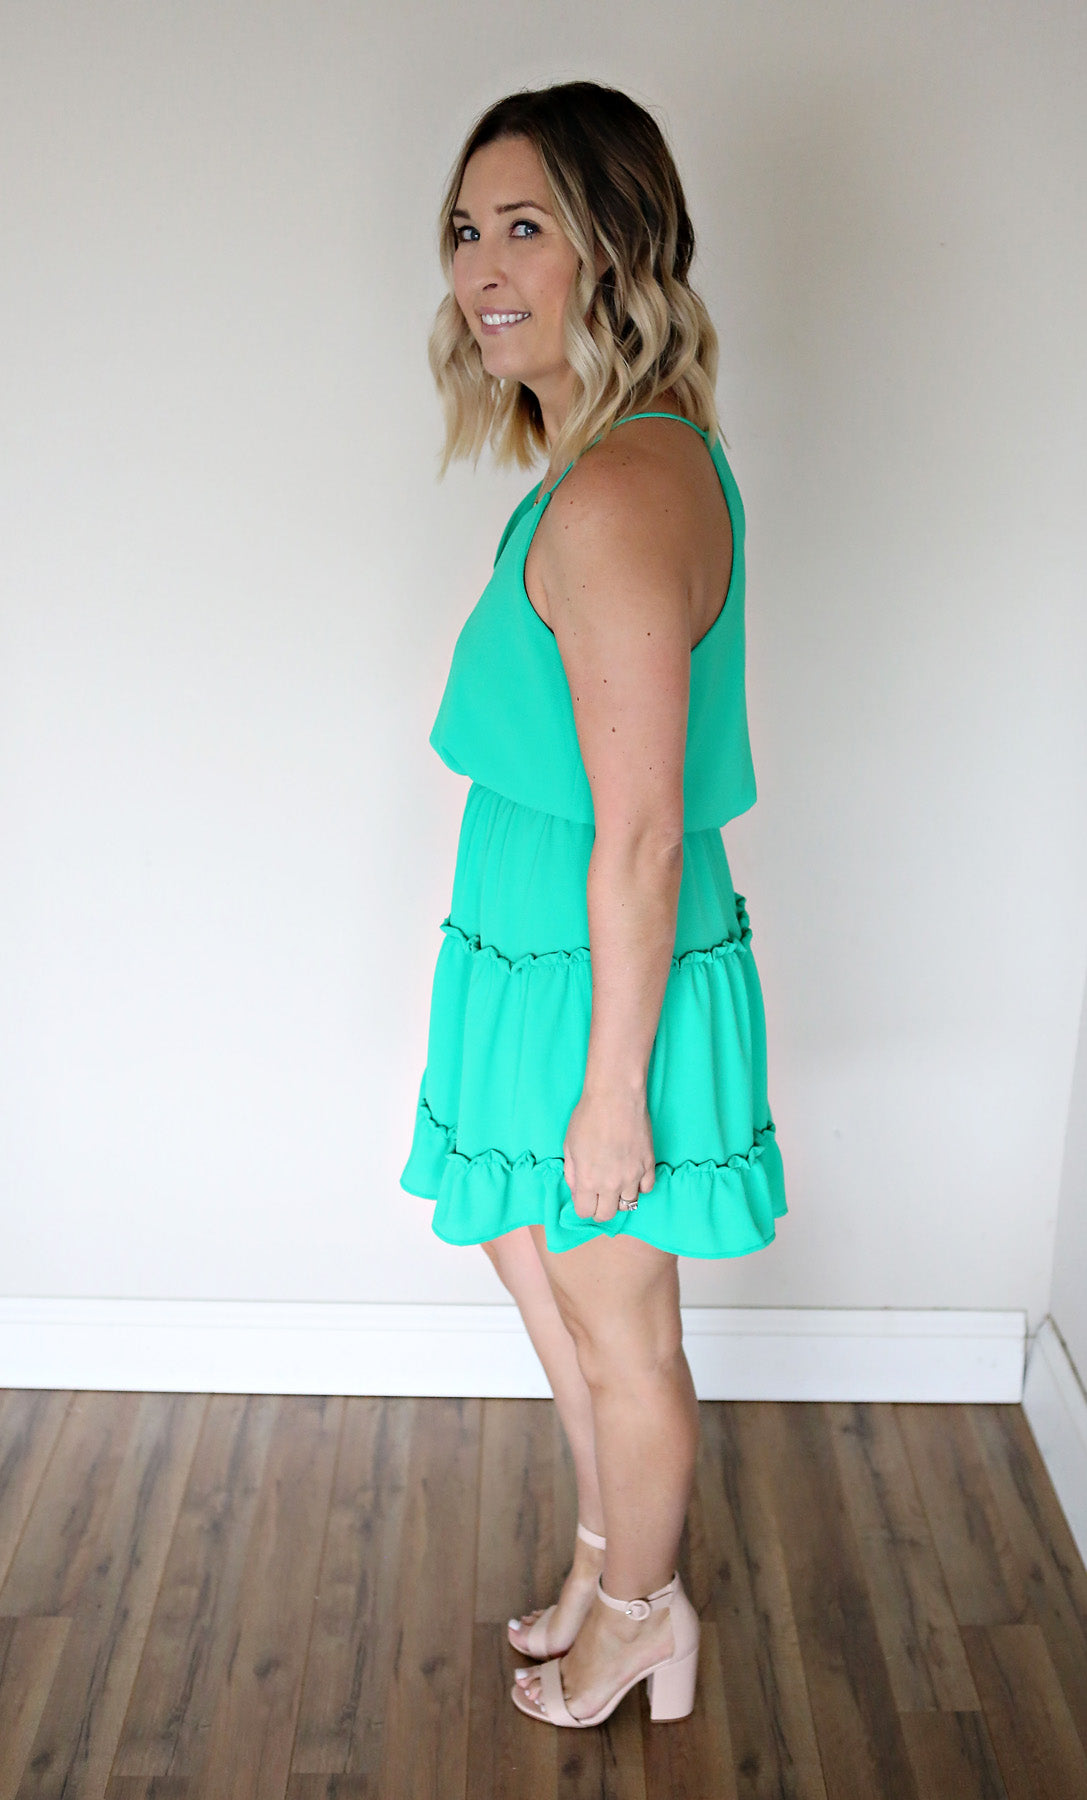 Gianna Dress - TAKE 50% OFF WITH CODE 'GOODBYESUMMER'